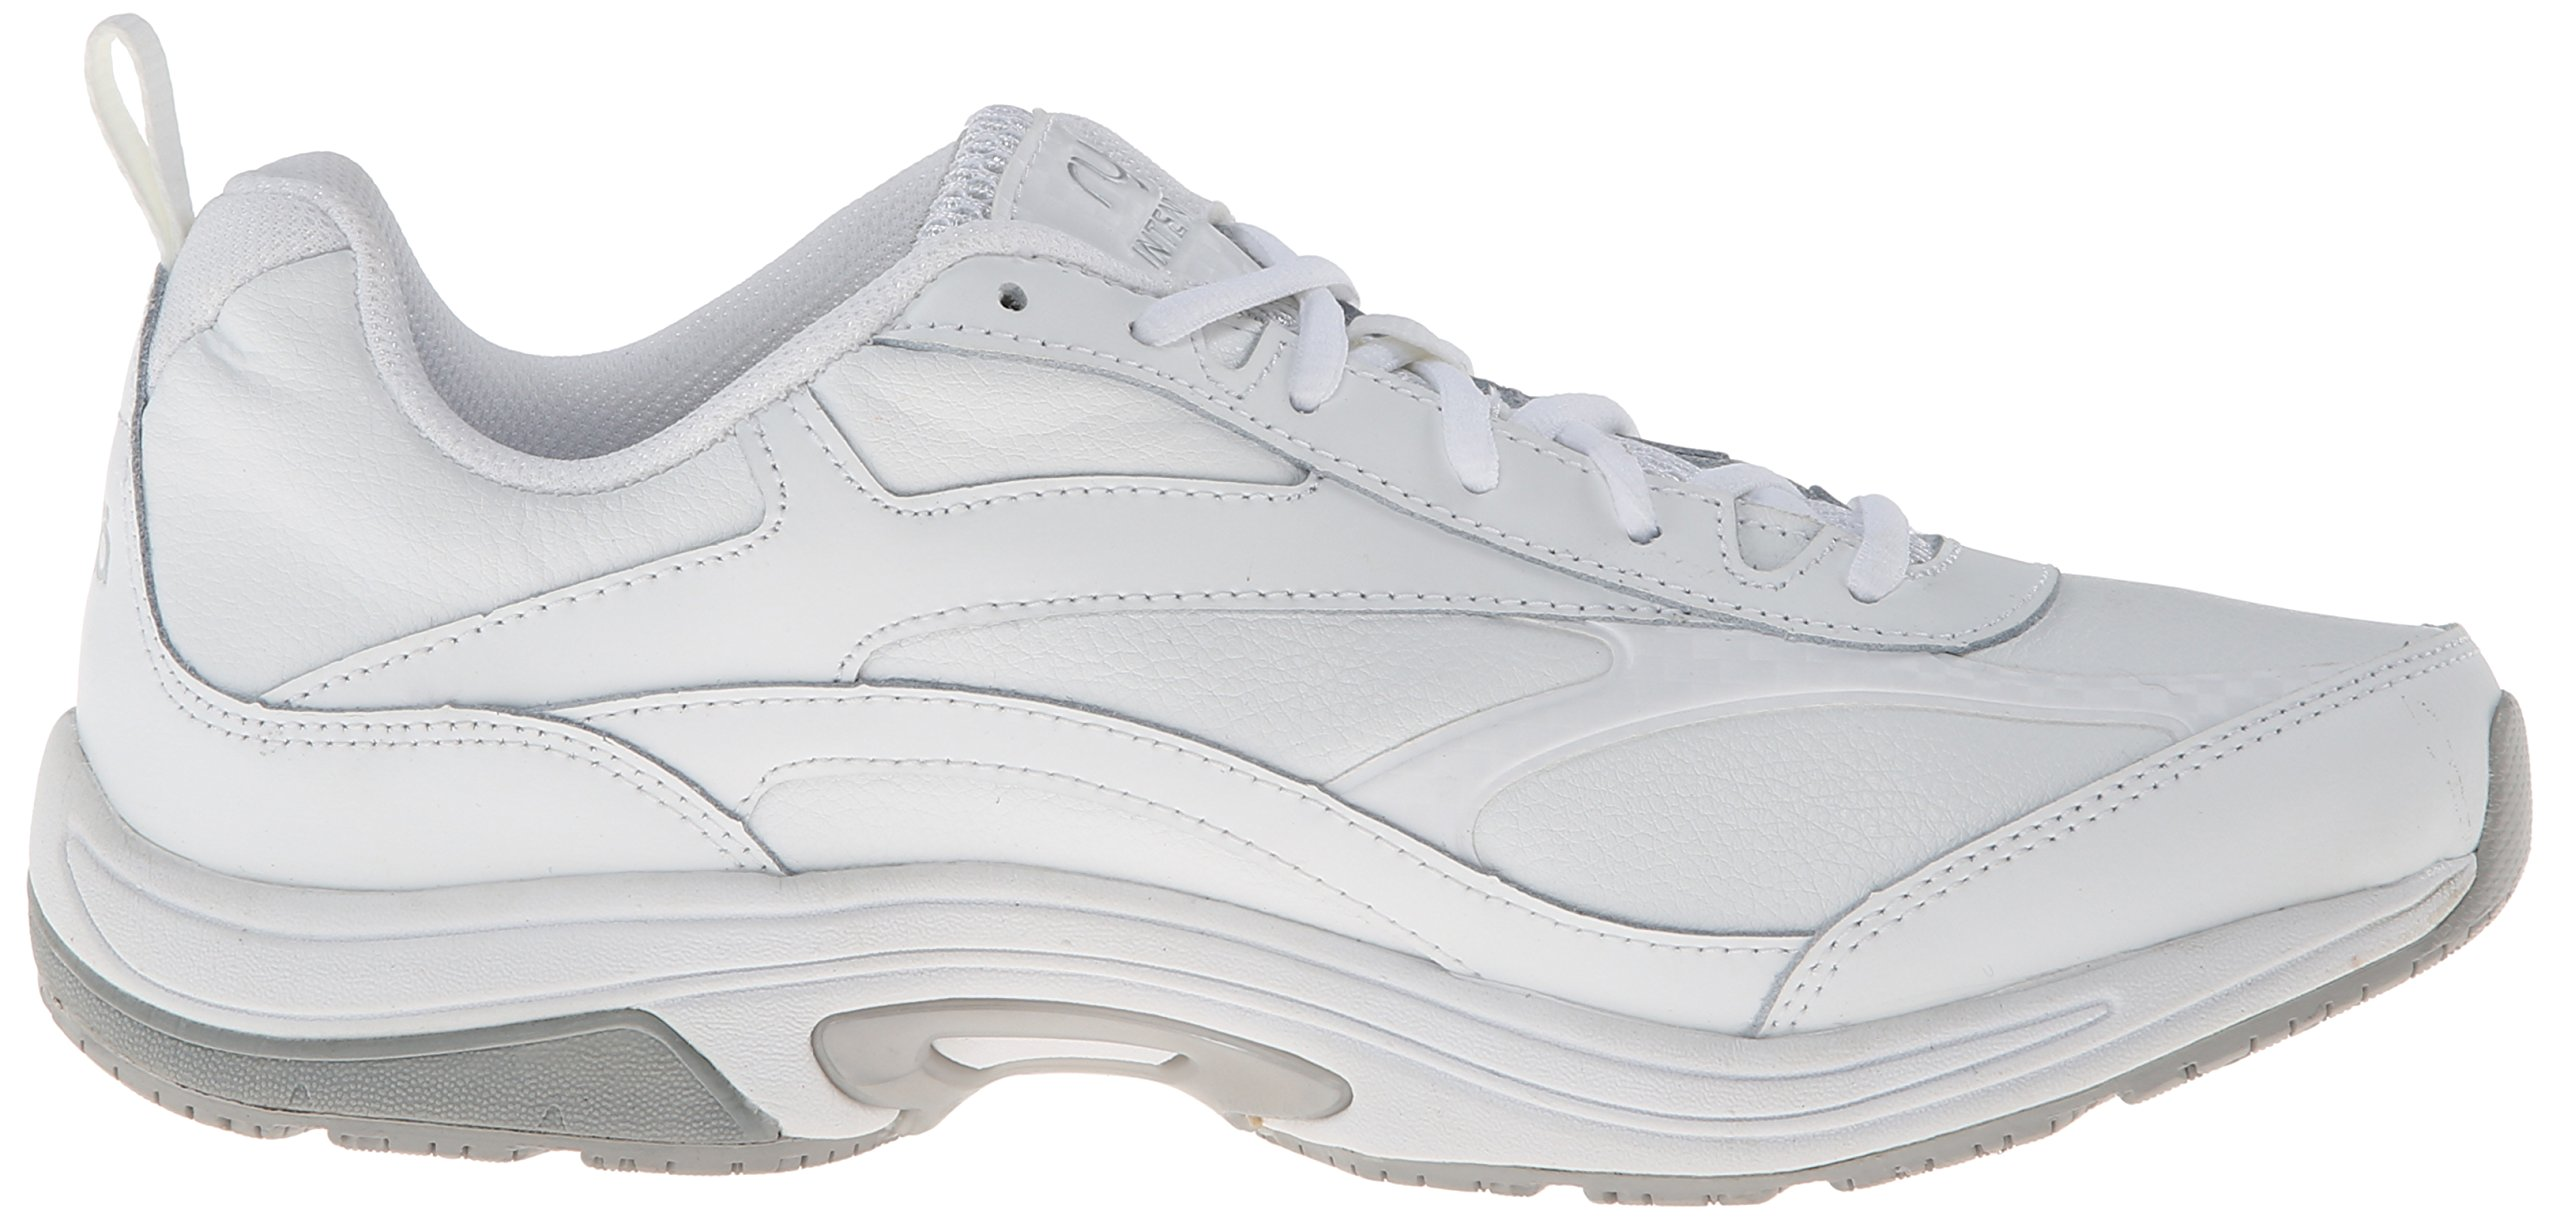 Silver 9 Xt Sr Cuir 2 chrome 40 Ryka Eur Us Baskets Intent White w8qaAA